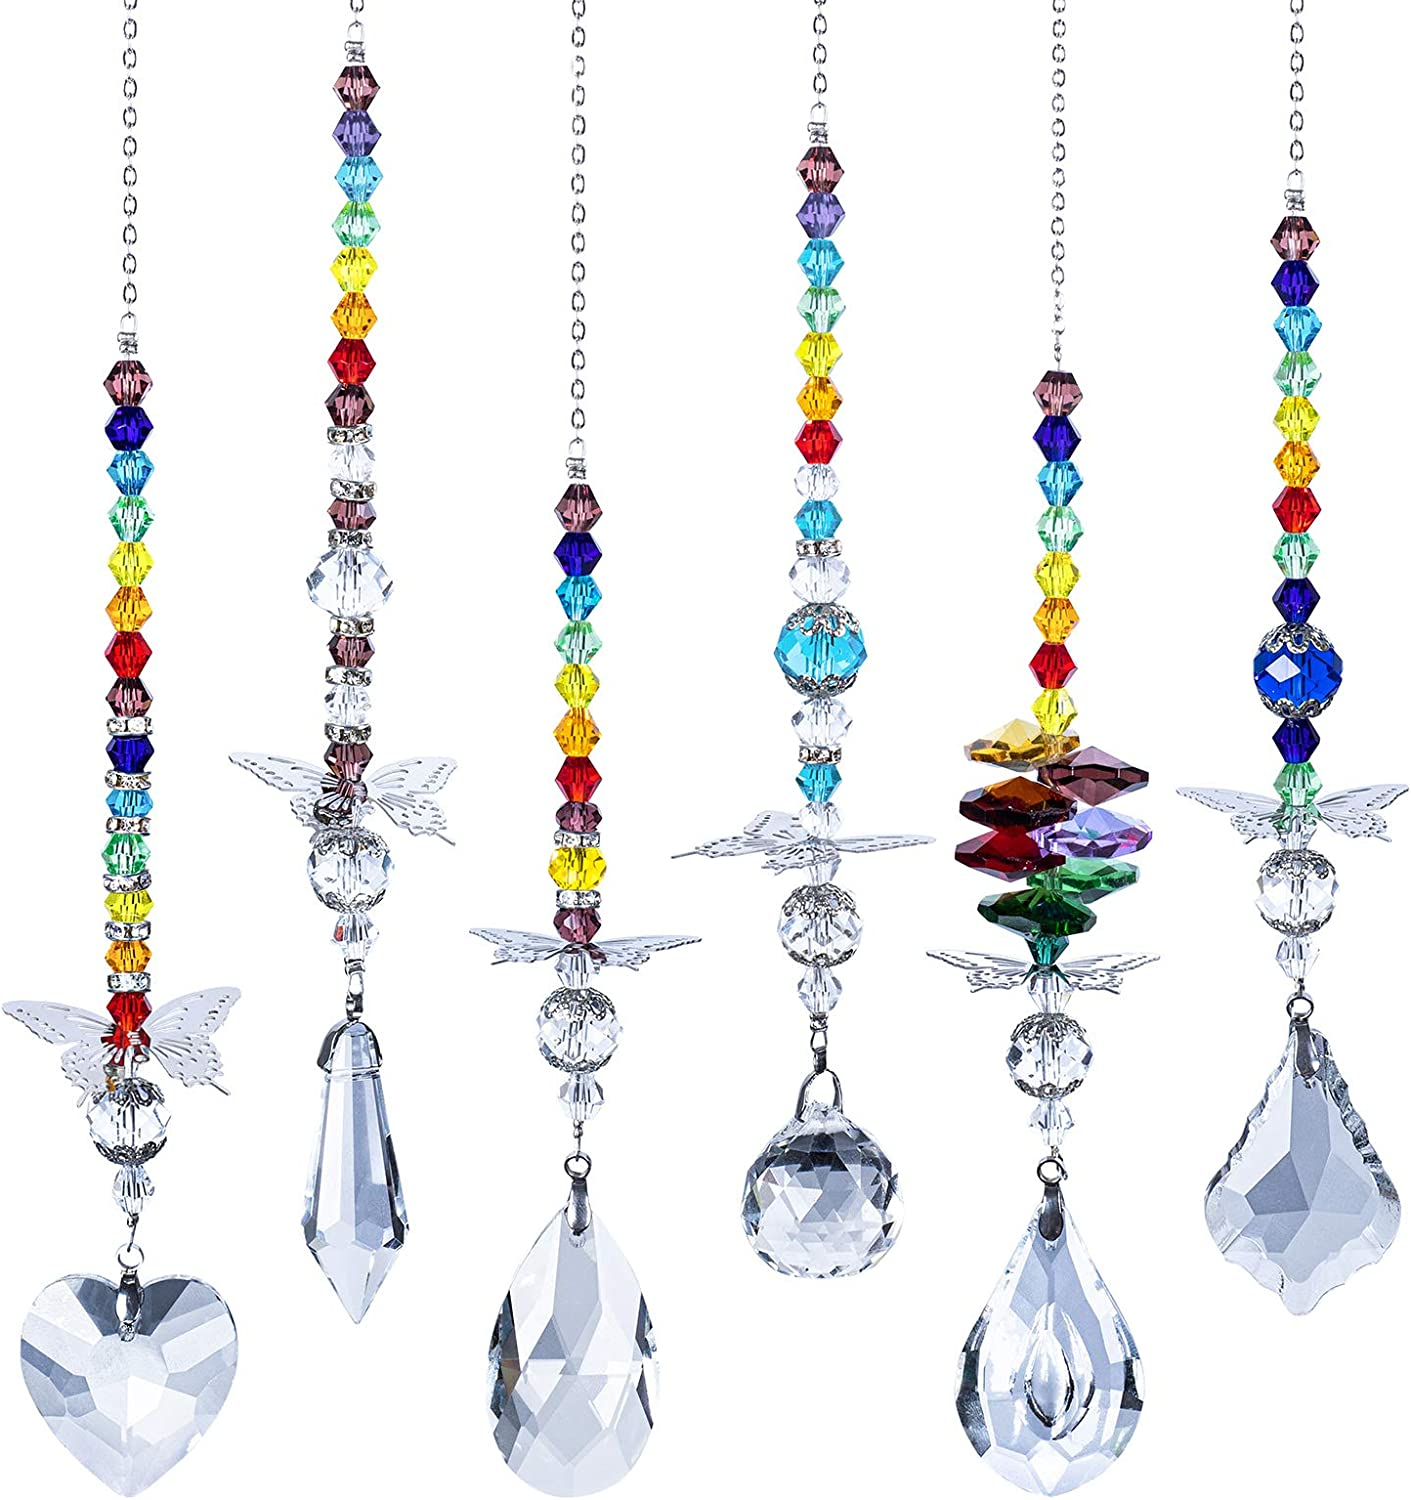 Crystals Ball Prisms Suncatcher for Window Rainbow Maker with Butterfly Hanging Ornament for Home,Office,Garden Decoration, Pack of 6